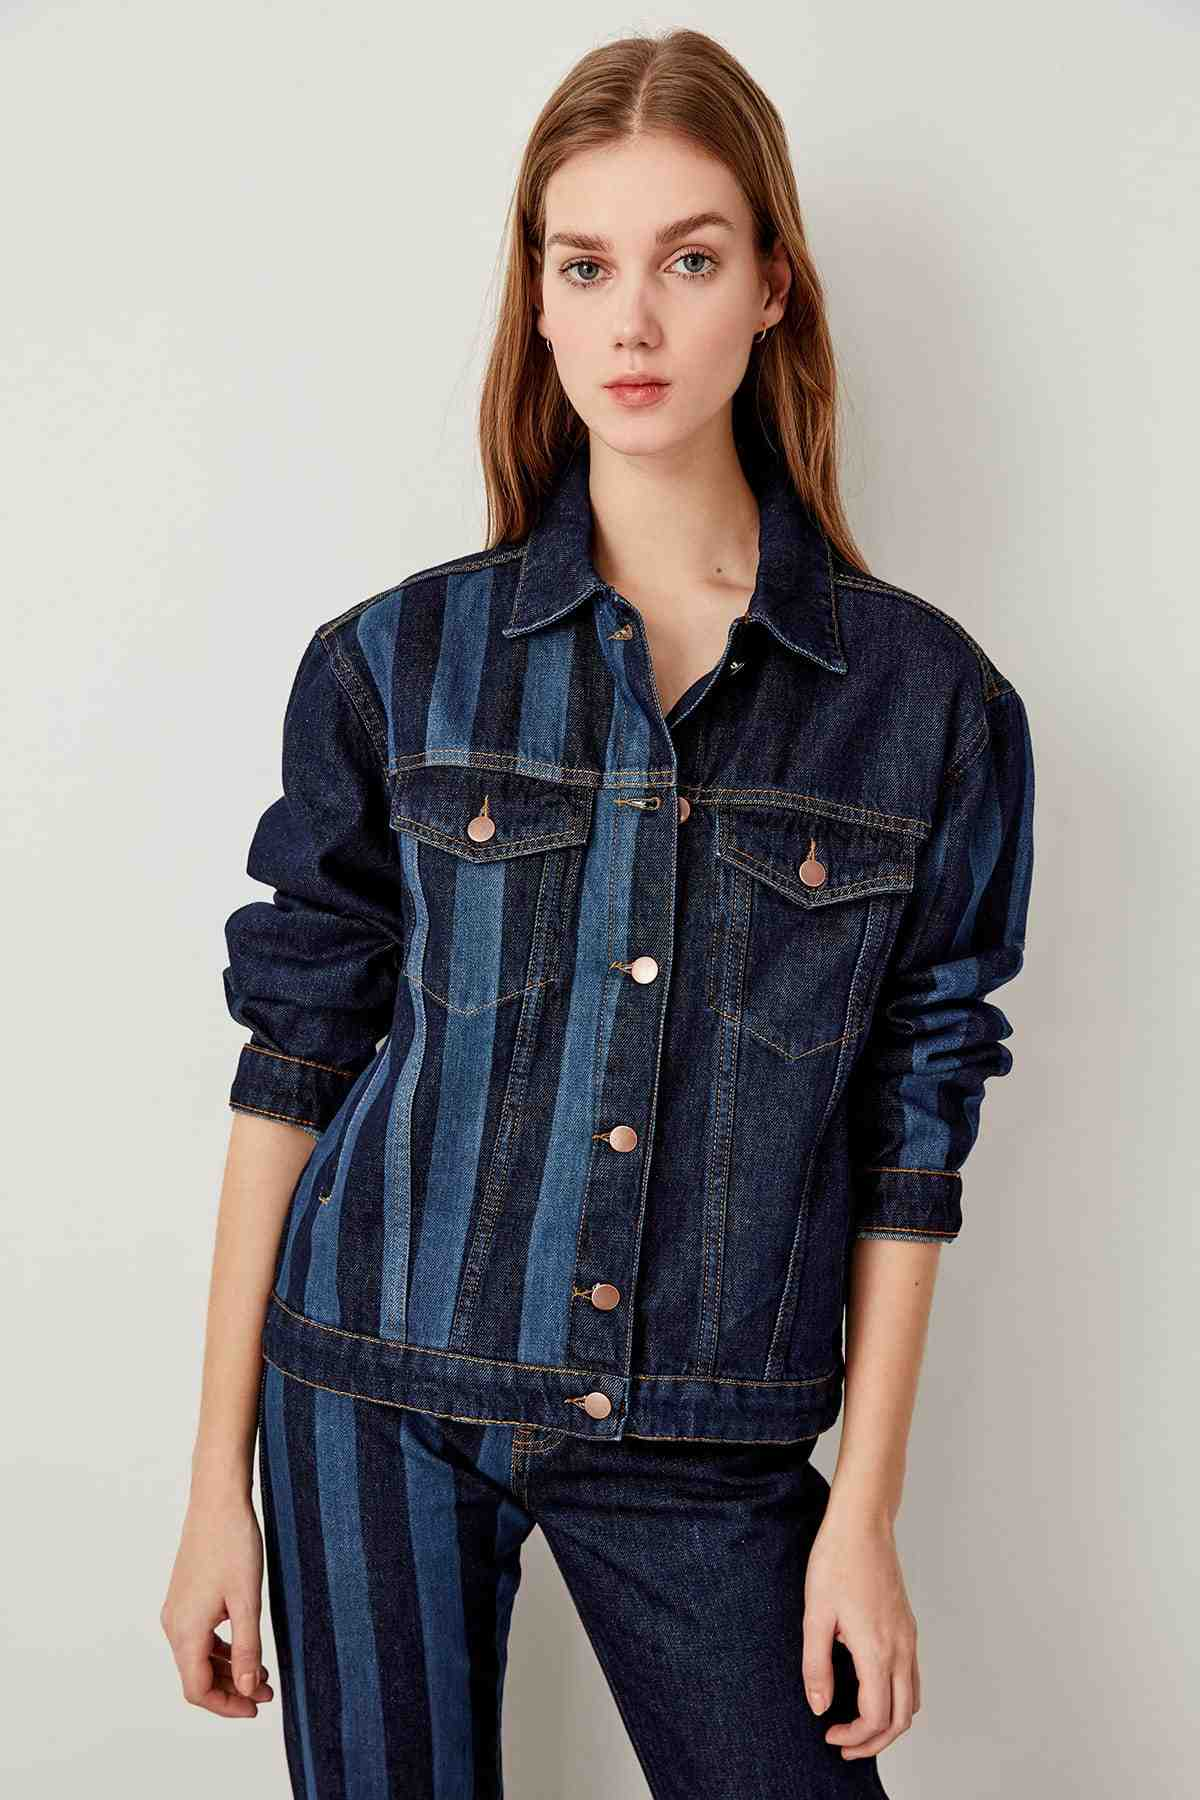 fc29c55825a38 Detail Feedback Questions about Trendyol Black striped denim jacket ...